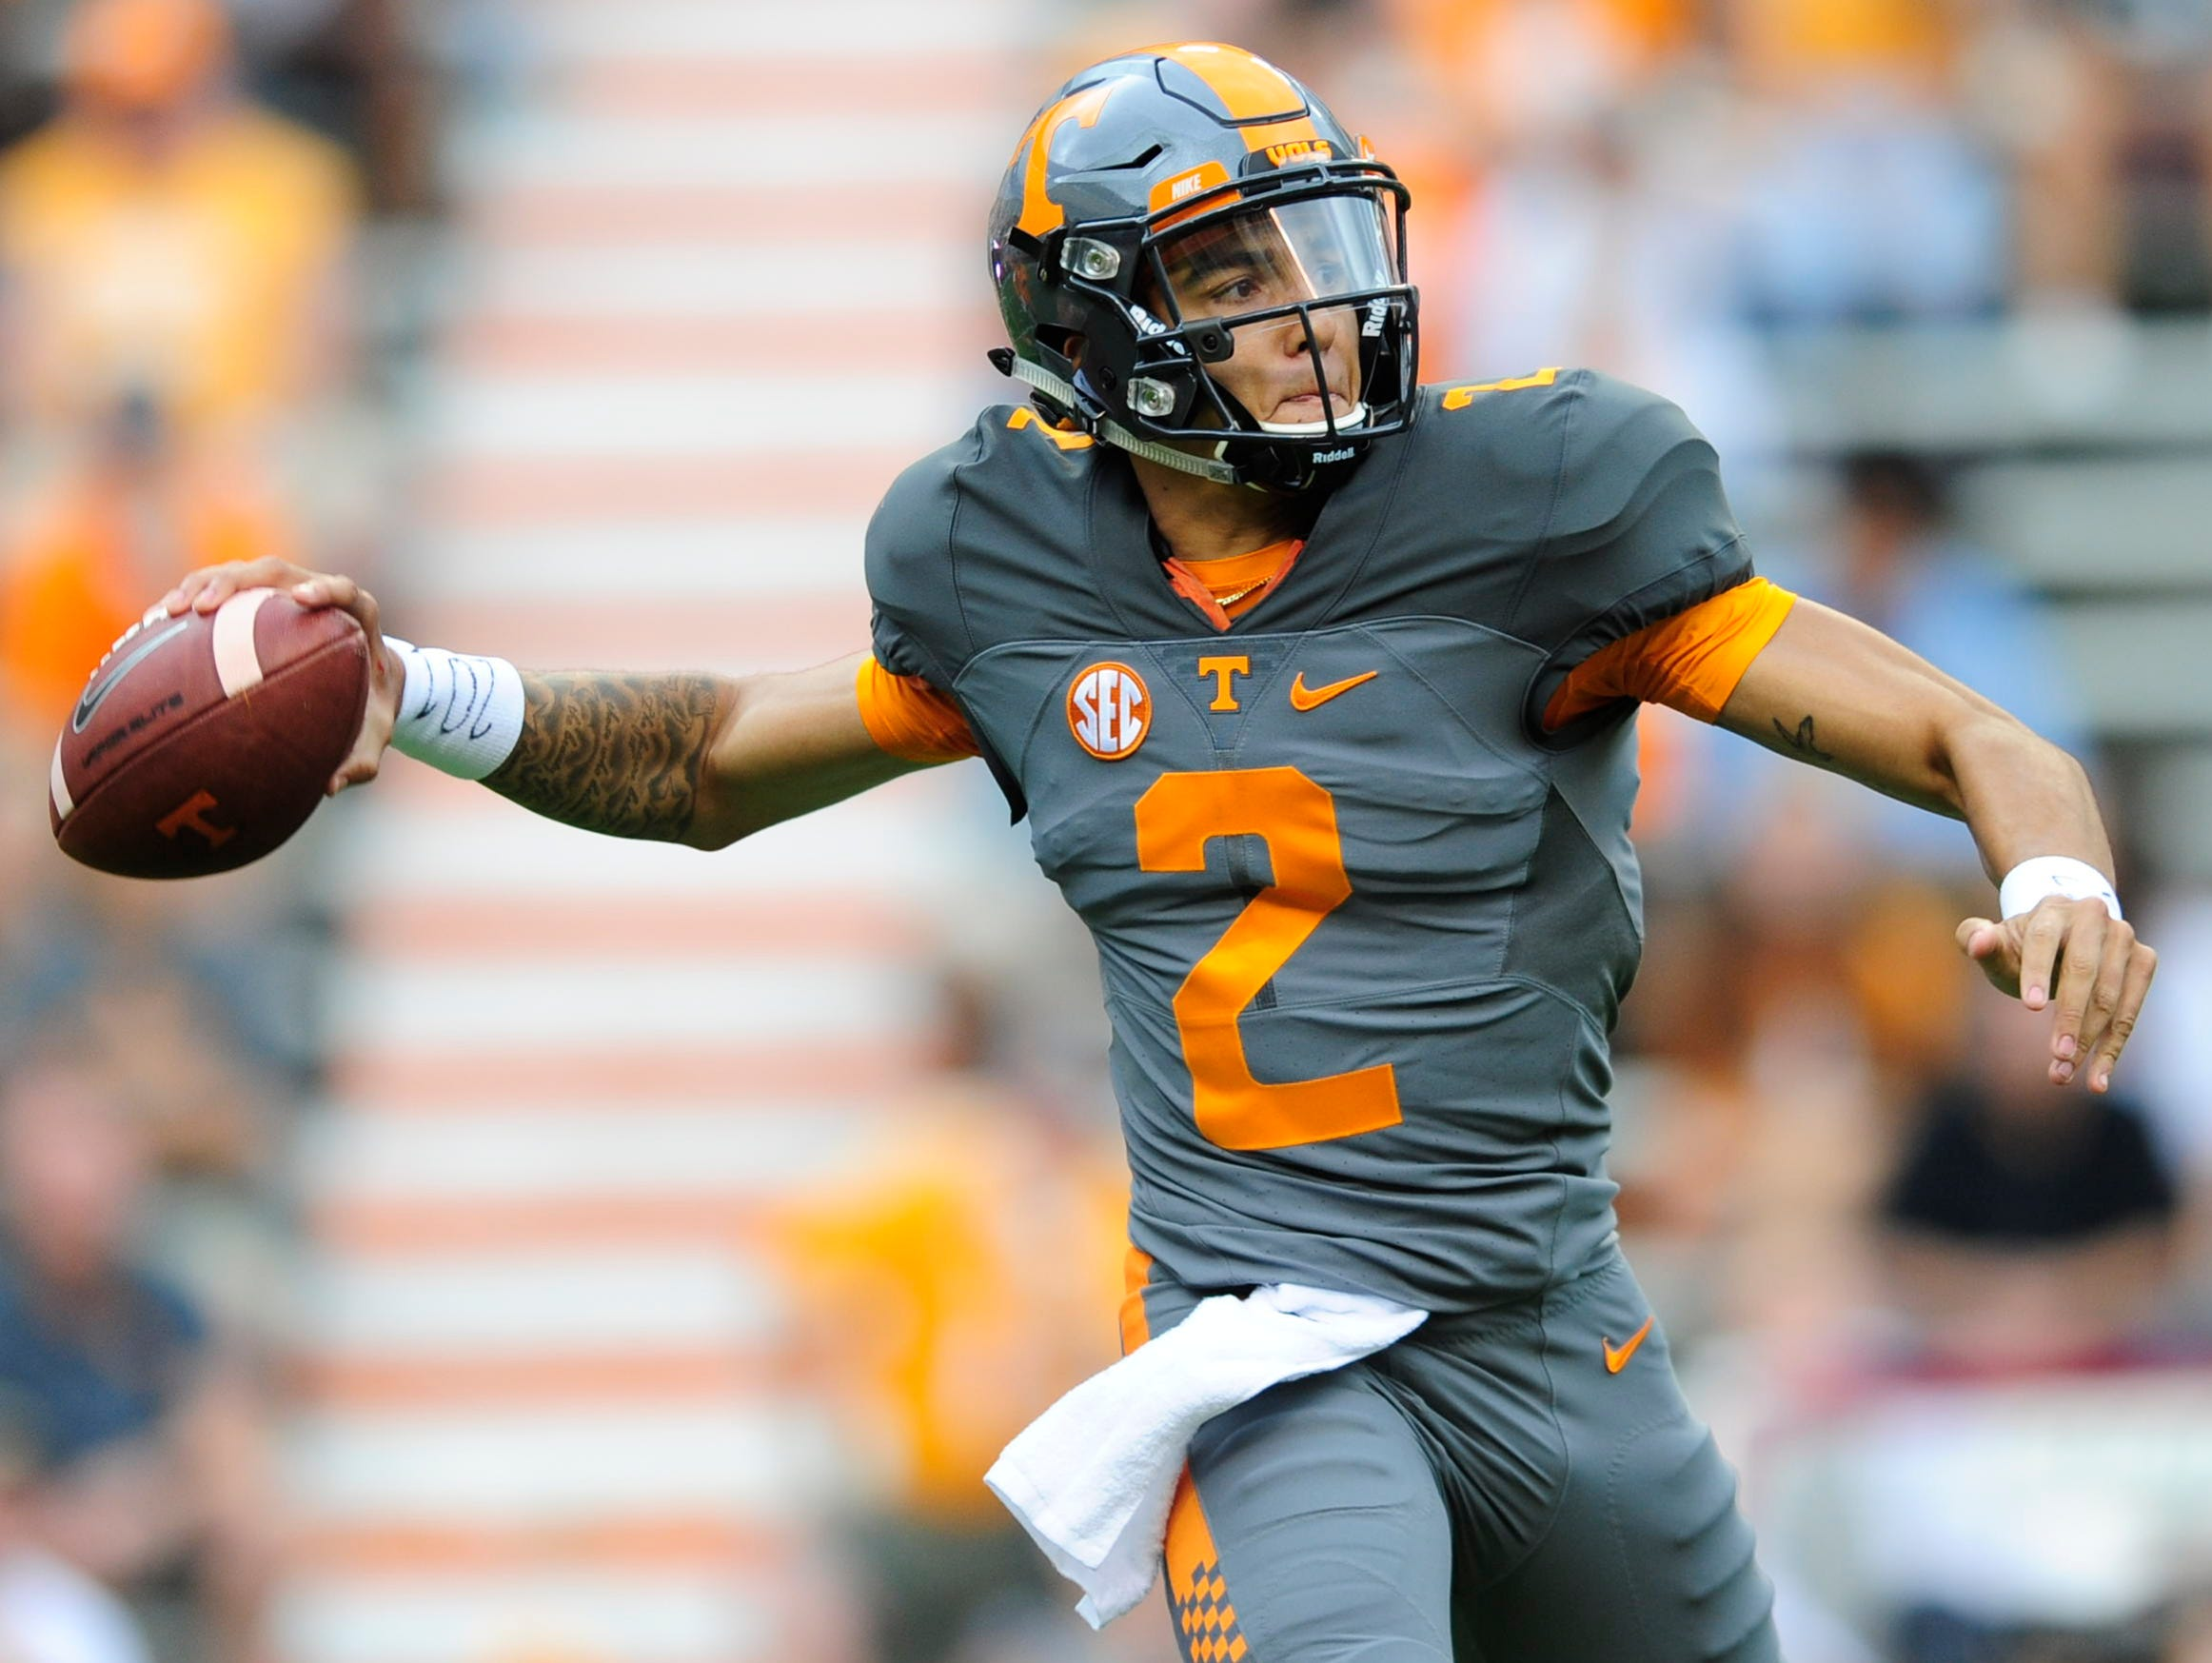 University of Tennessee's quarterback Jarrett Guarantano (2) throws a pass during the Orange & White Game at Neyland Stadium in Knoxville, Tennessee on Saturday, April 22, 2017.